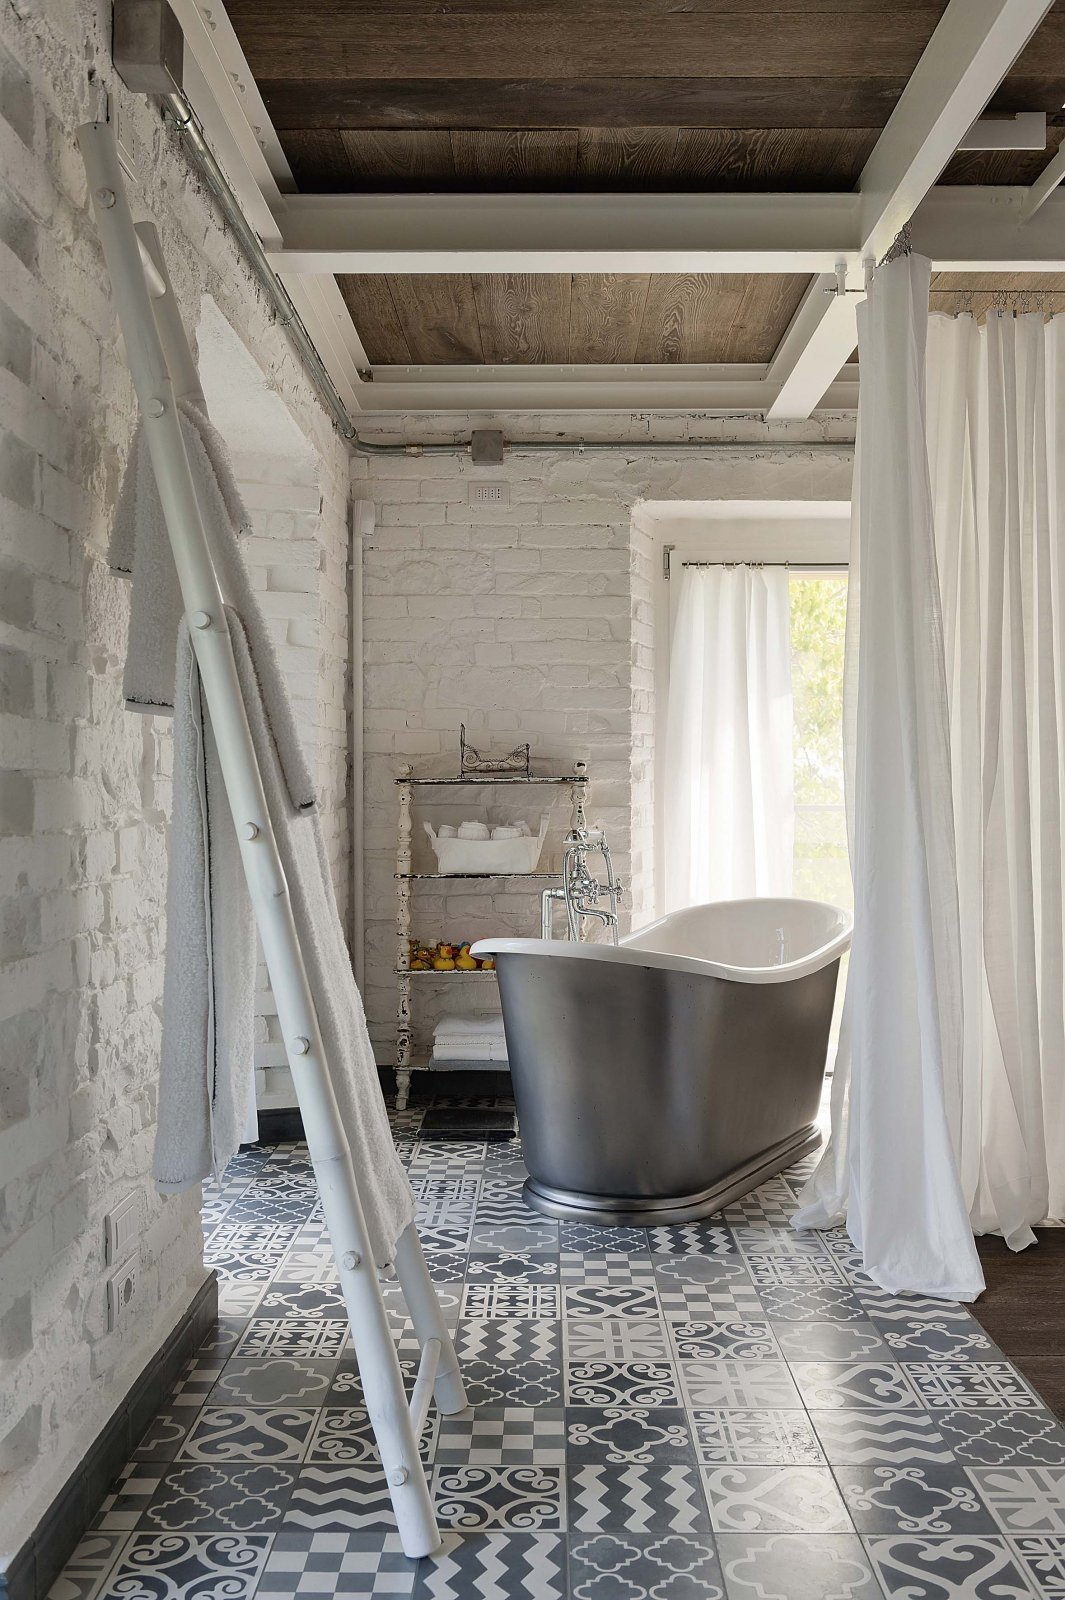 Feel Inspired By These Bathroom Tile Trends For 2019 Bathroom Tile Trends Feel Inspired By These Bathroom Tile Trends For 2019 Feel Inspired By These Bathroom Tile Trends For 2019 2